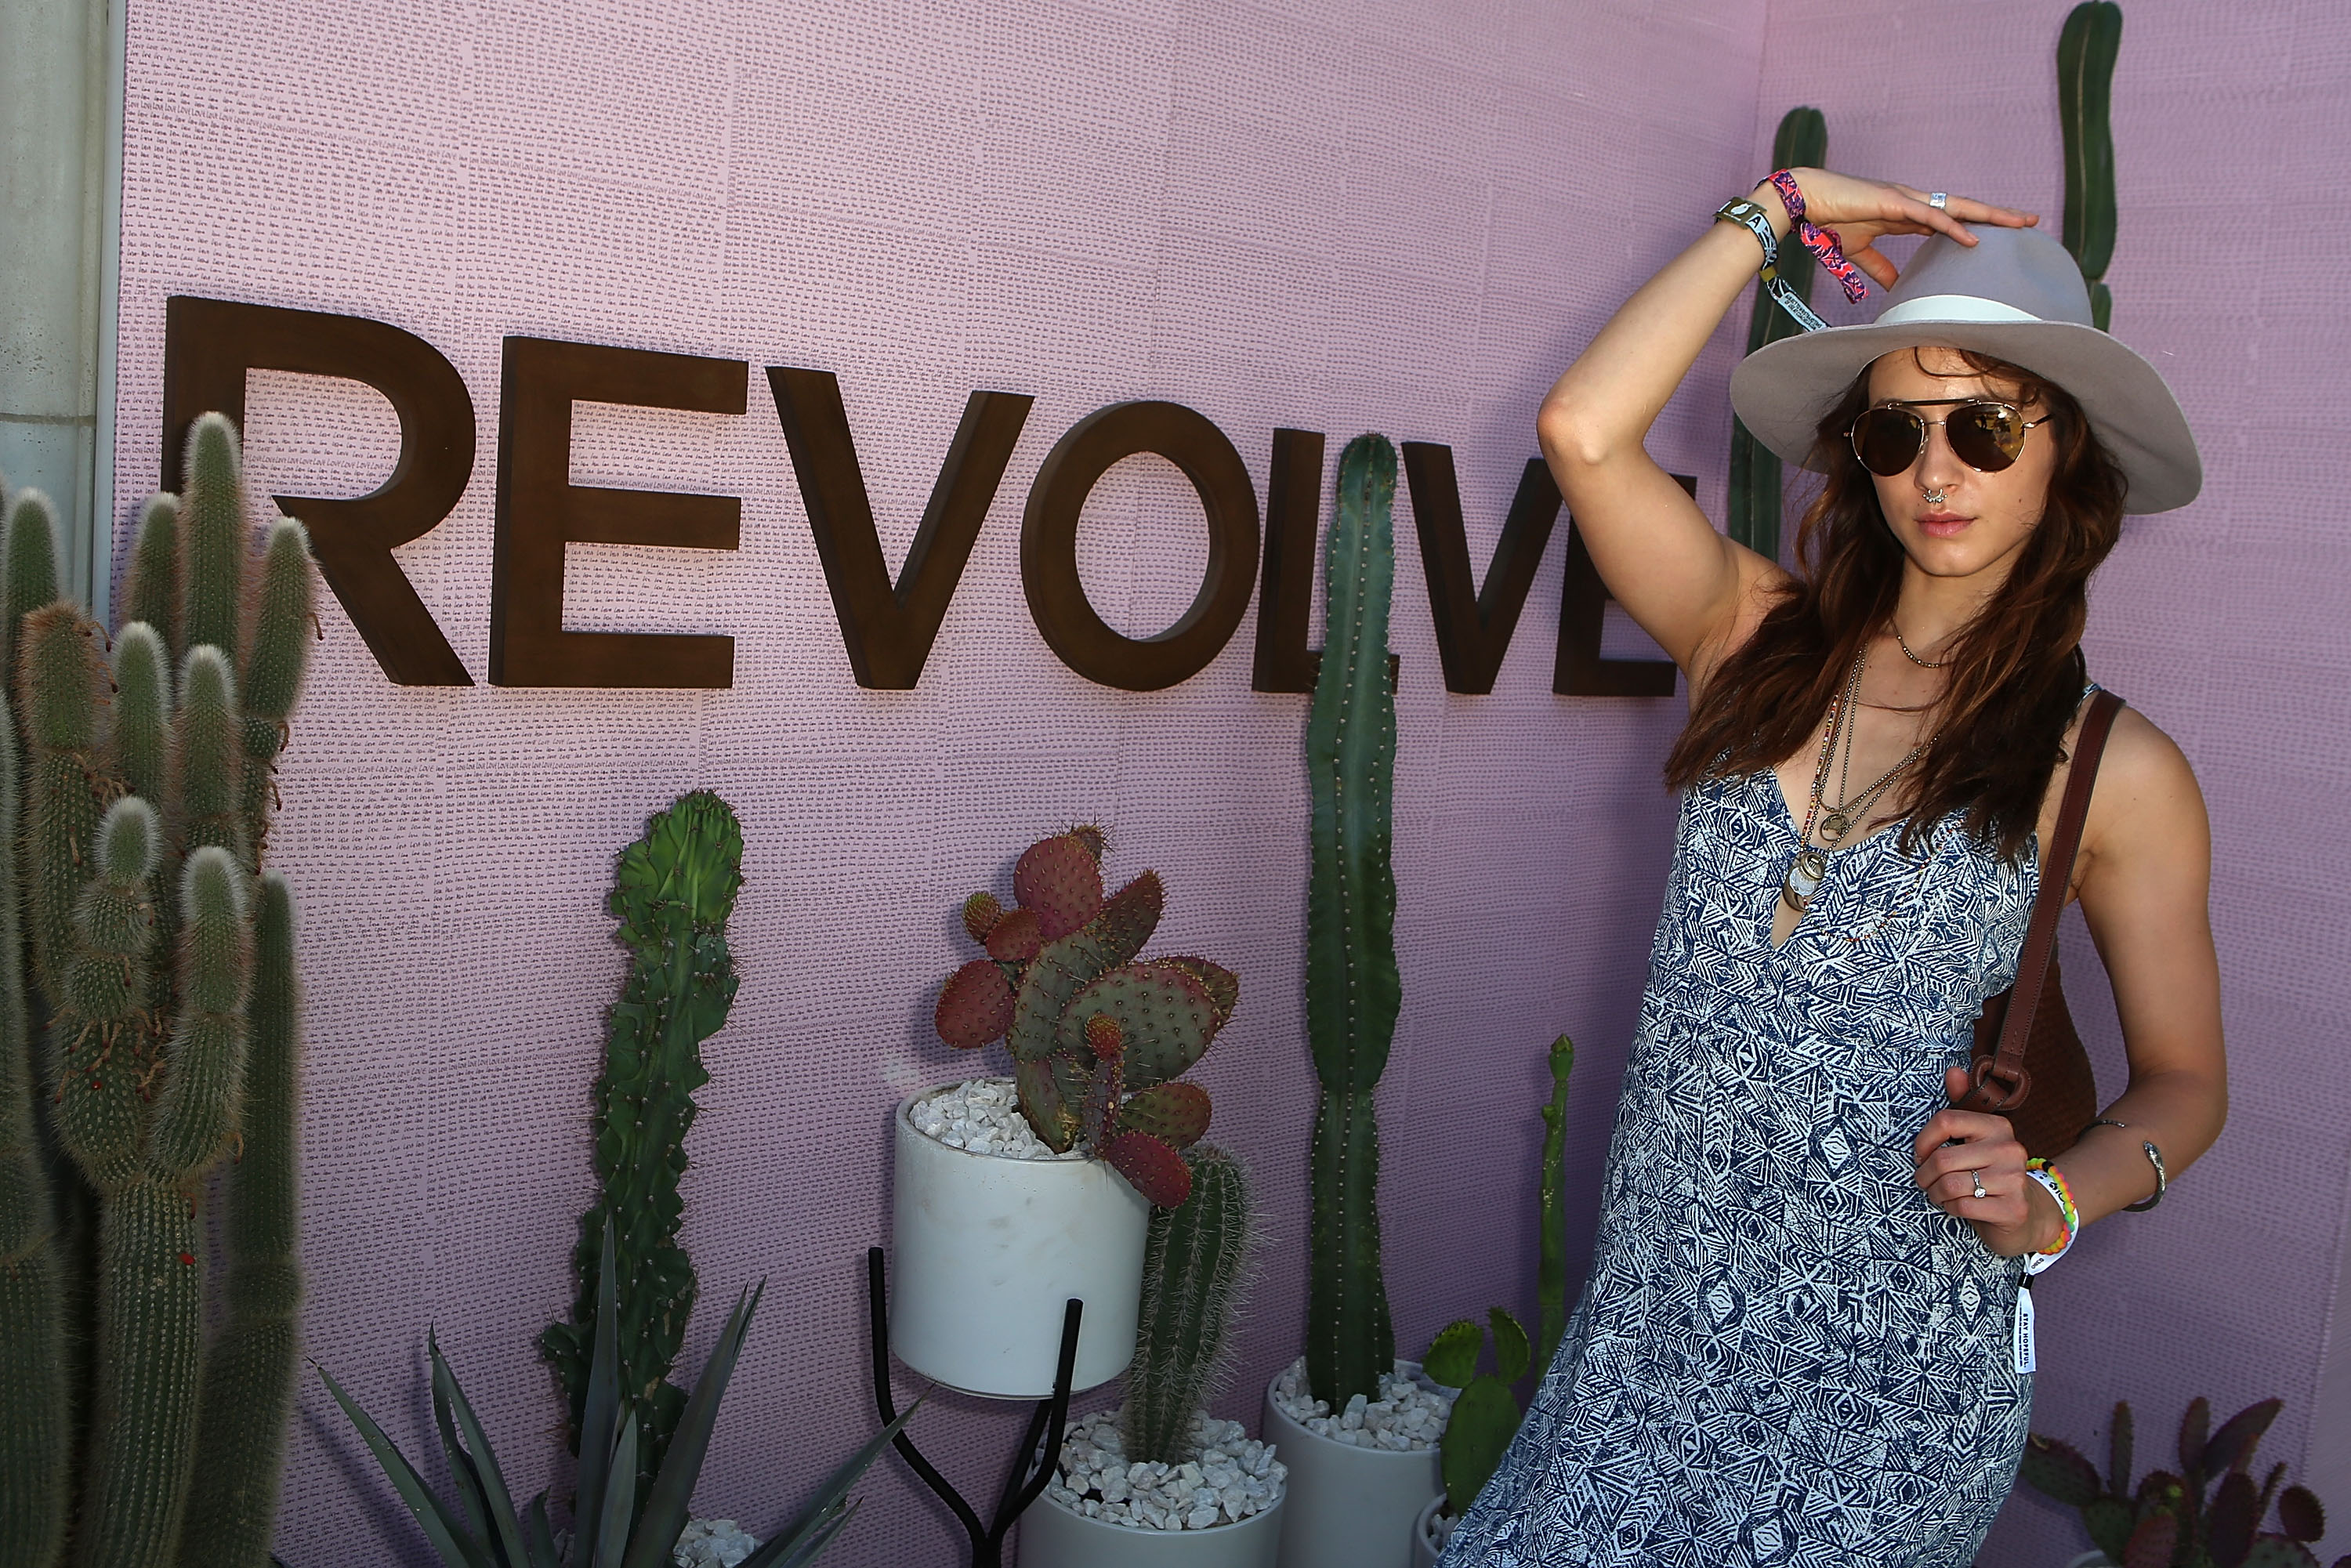 Troian Bellisario at Coachella